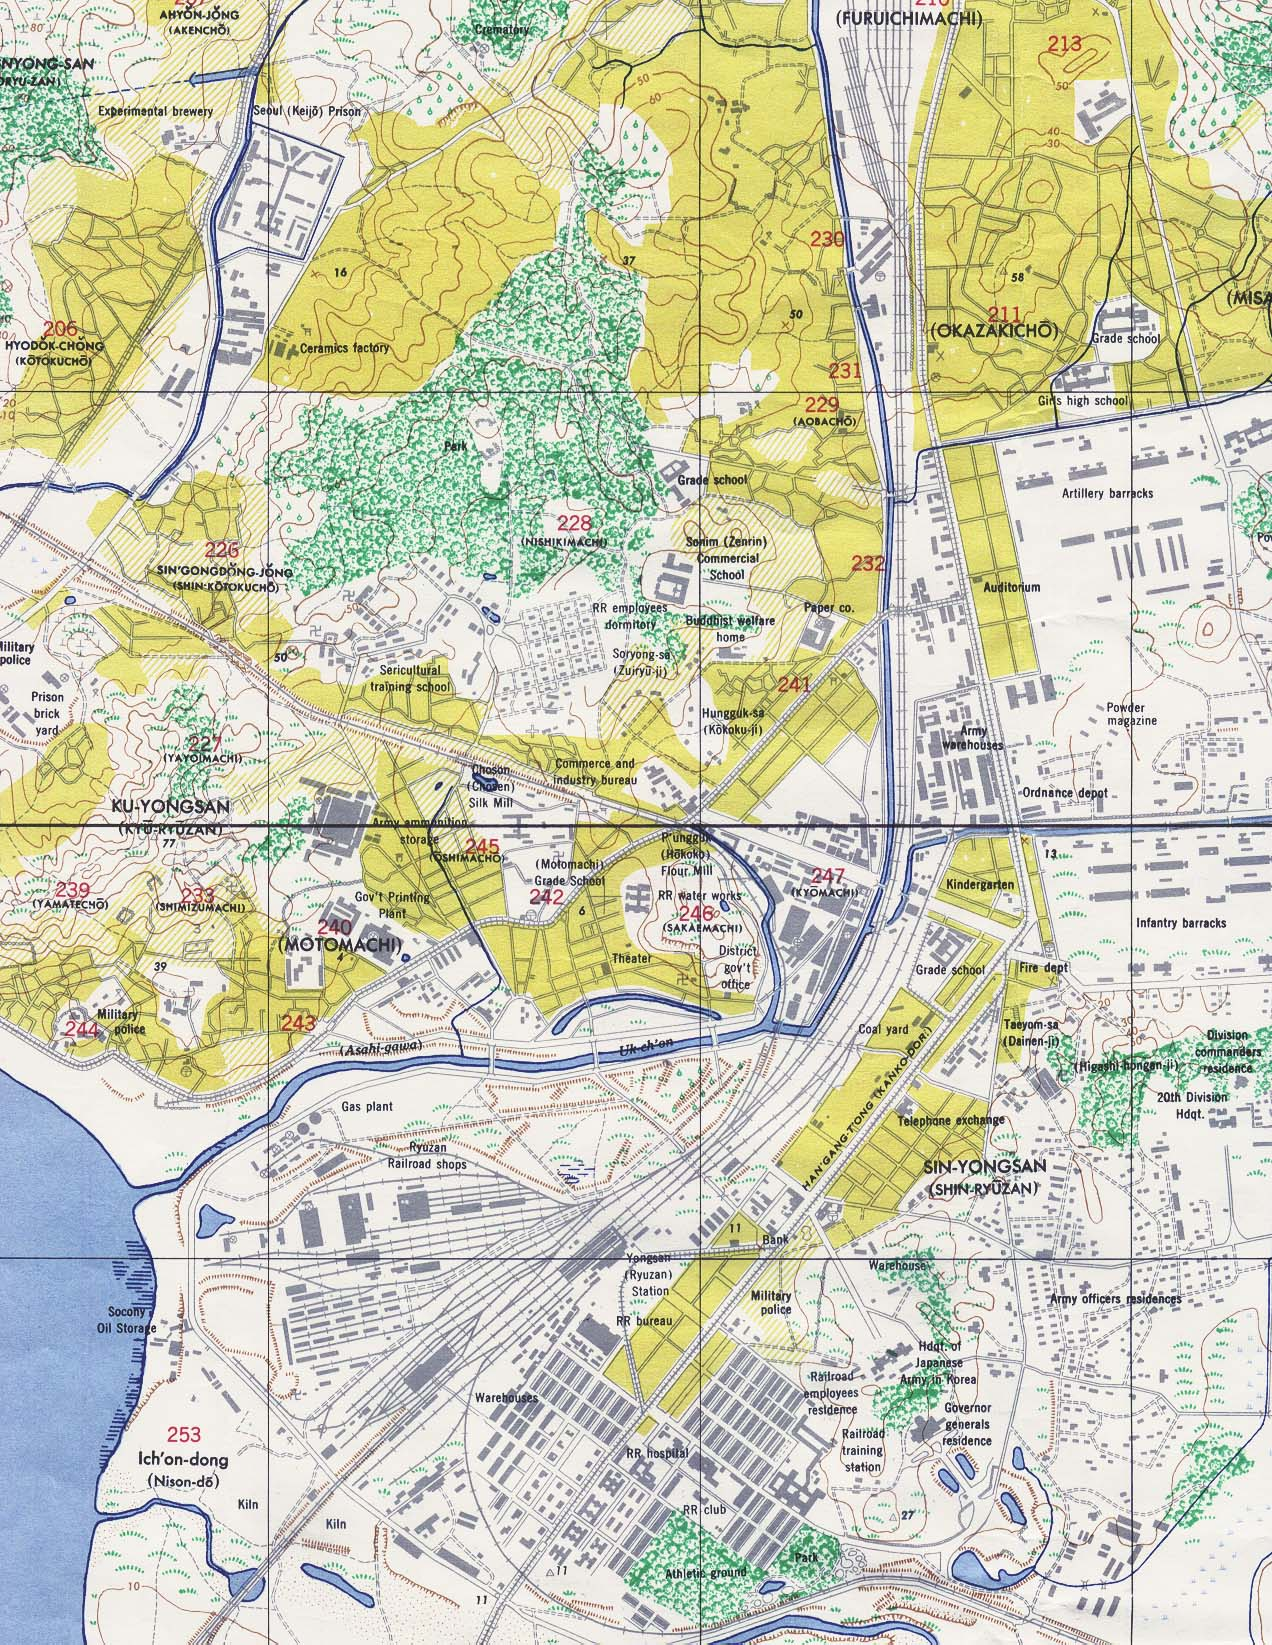 Or entire map 7 6mb from kyongsong or seoul keijo kyonggi do keiki do korea original scale 112500 u s army map service 1946